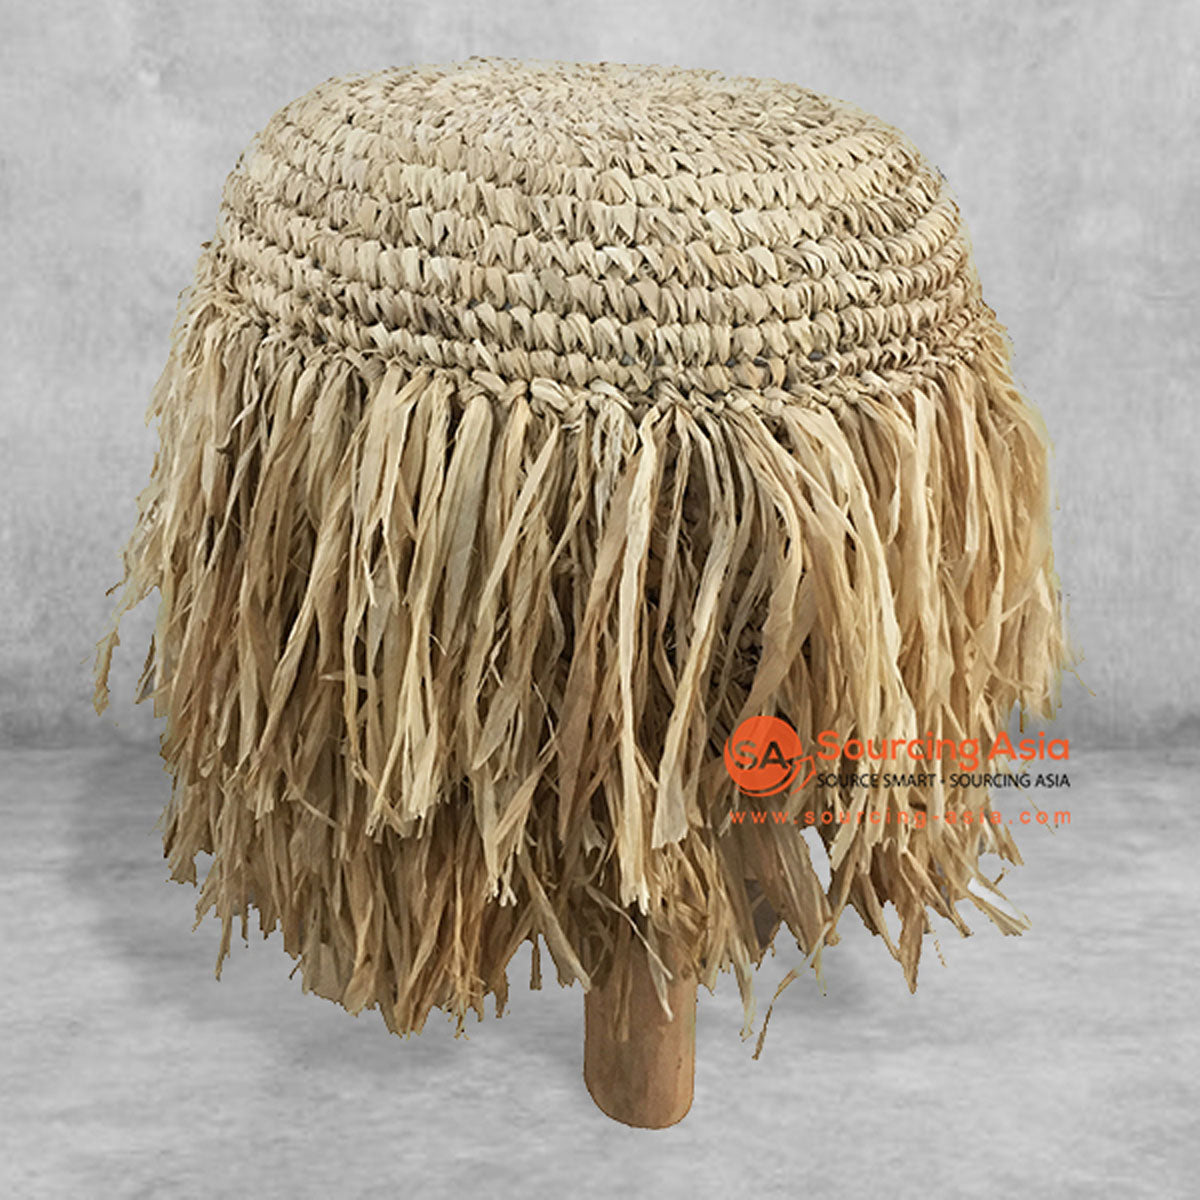 SHL143 NATURAL RAFFIA ROUND STOOL WITH FRINGE